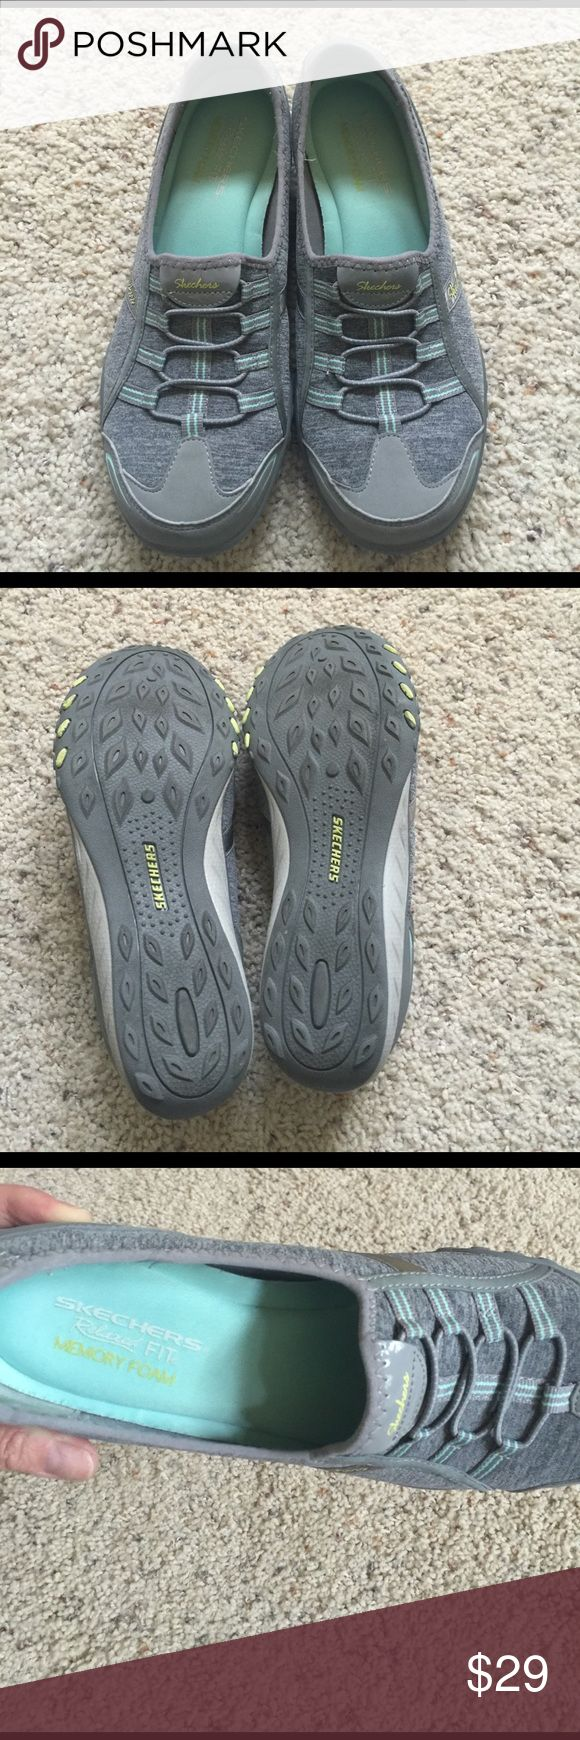 Gray Skechers slip on sneakers size 9 memory foam I have so many Skechers! They are the best. I think these must have been worn just once. Excellent condition Skechers Shoes Sneakers